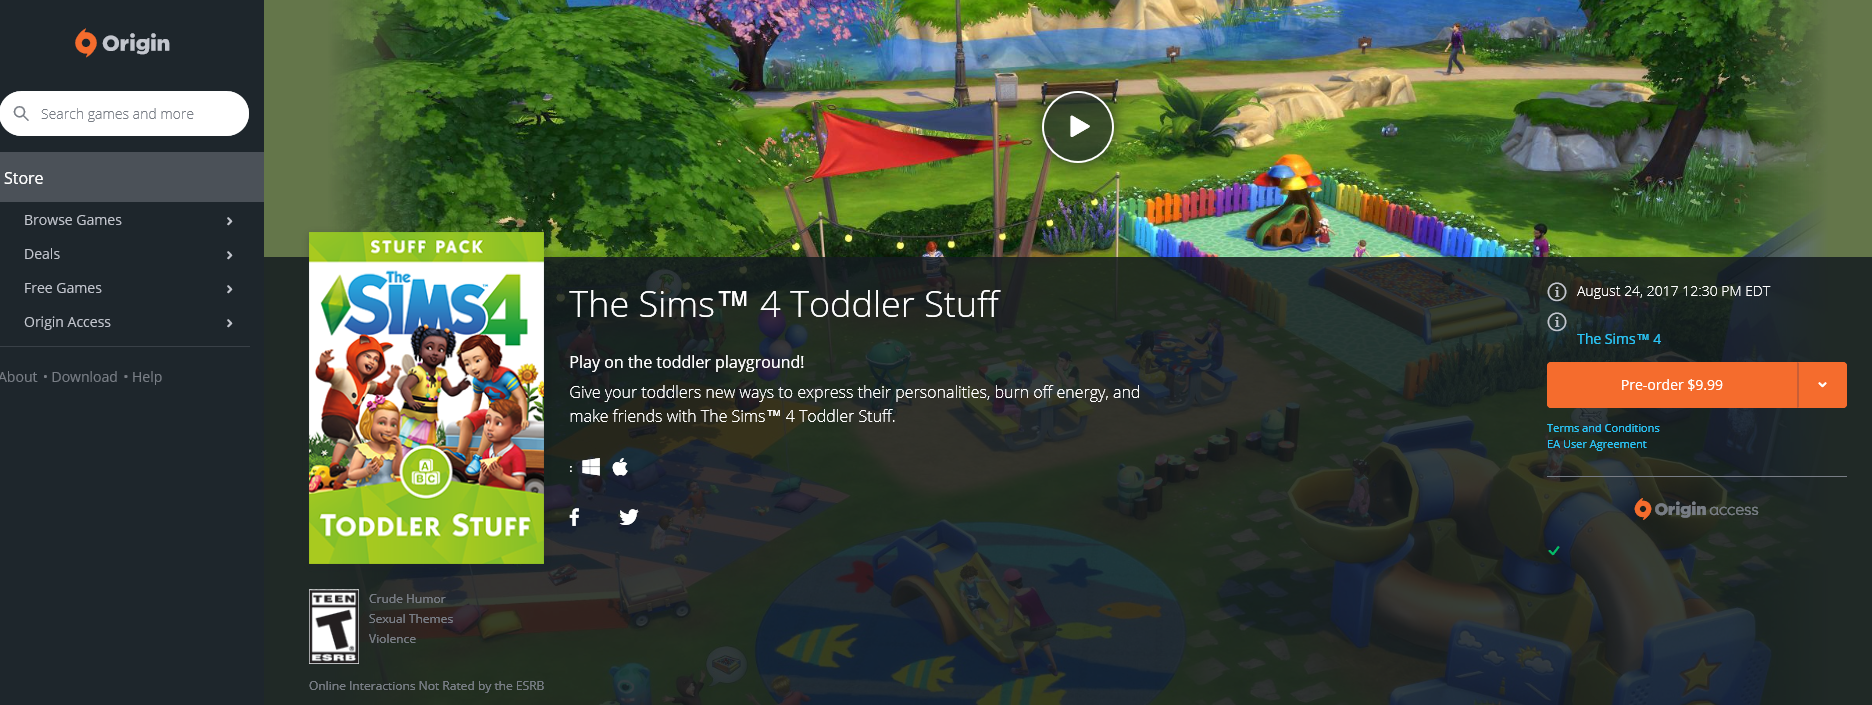 the sims 4 toddler stuff now available at origin simsvip